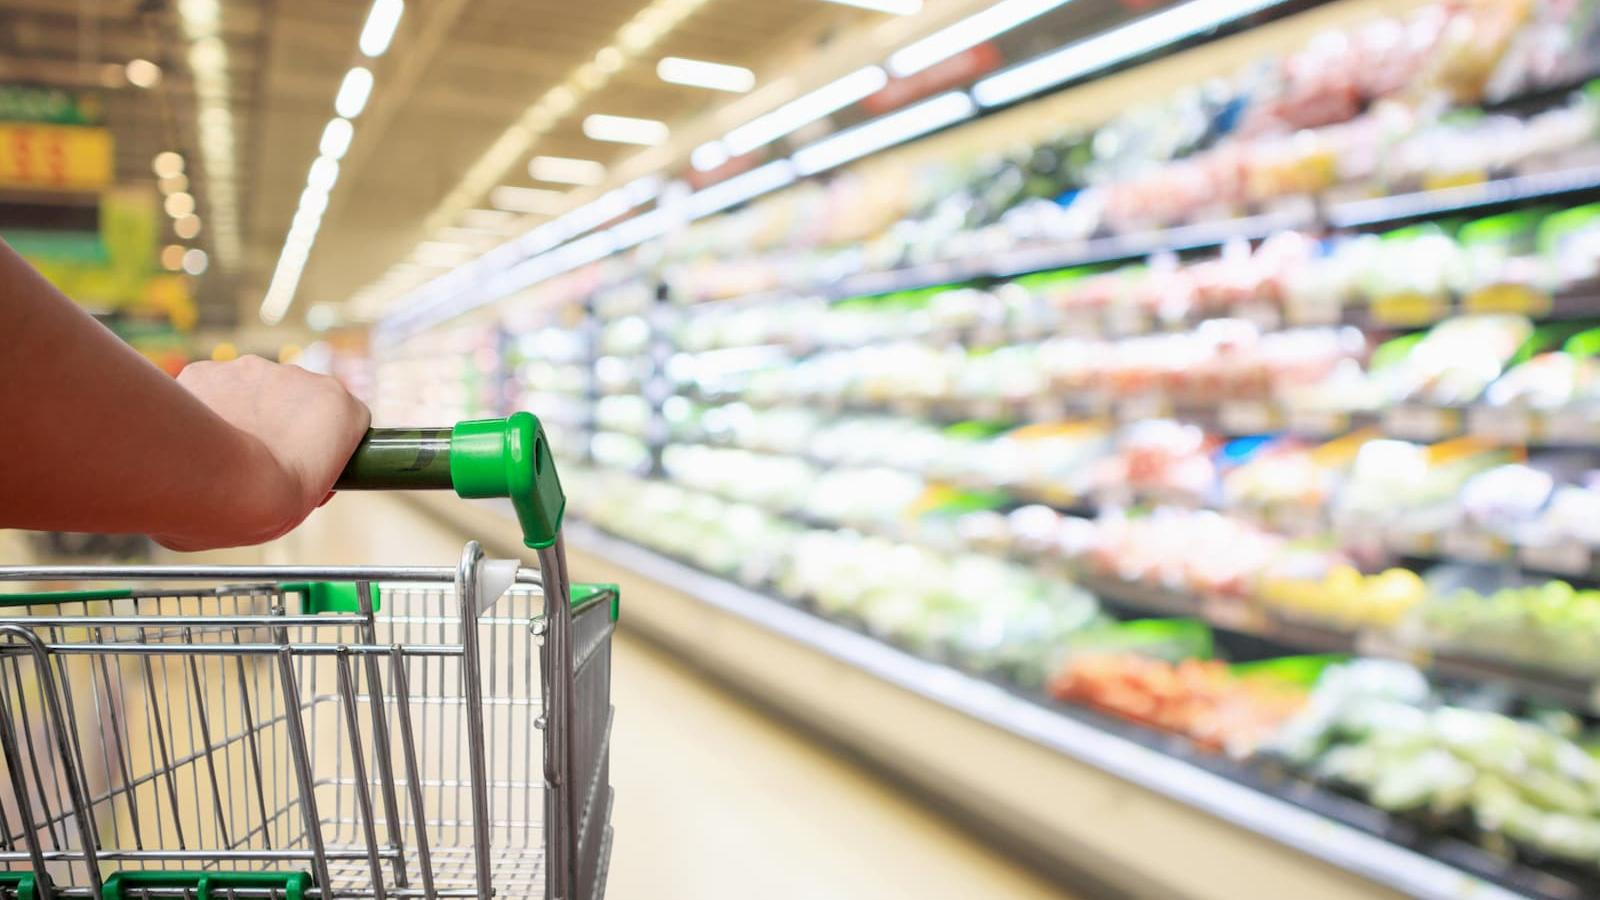 How to protect yourself from COVID-19 while grocery shopping: MoPH